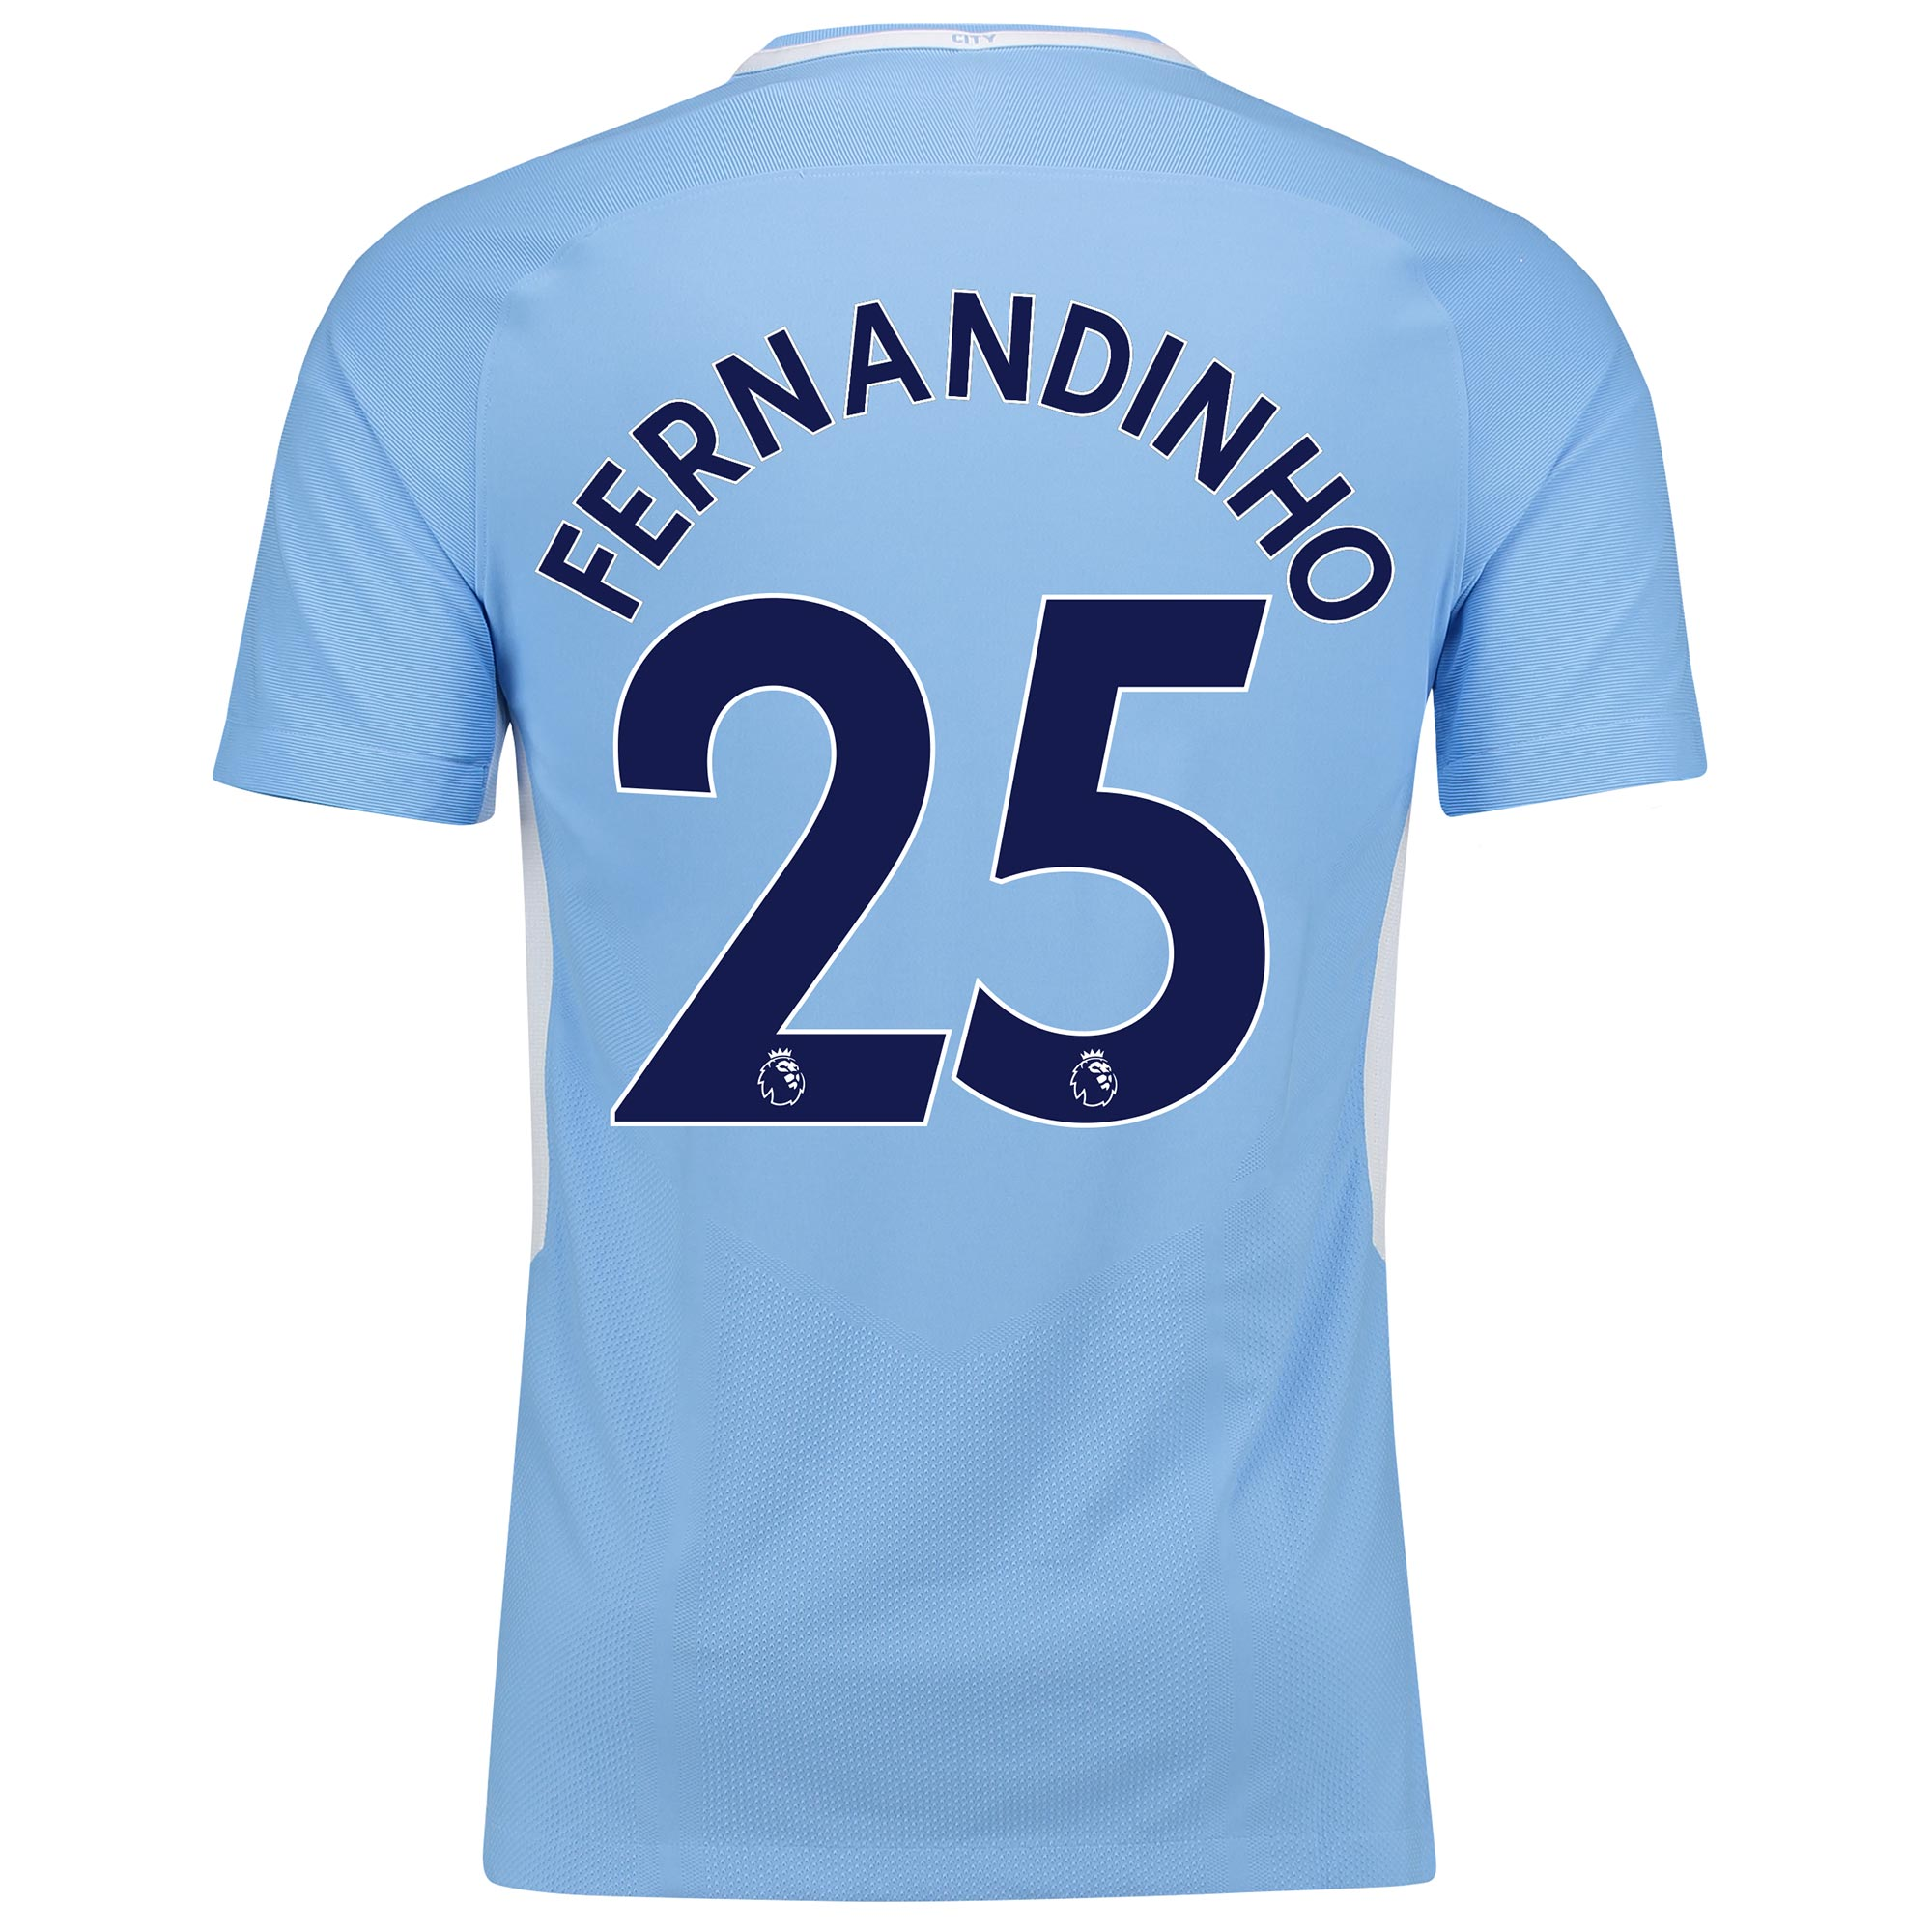 Manchester City Home Vapor Match Shirt 2017-18 with Fernandinho 25 pri